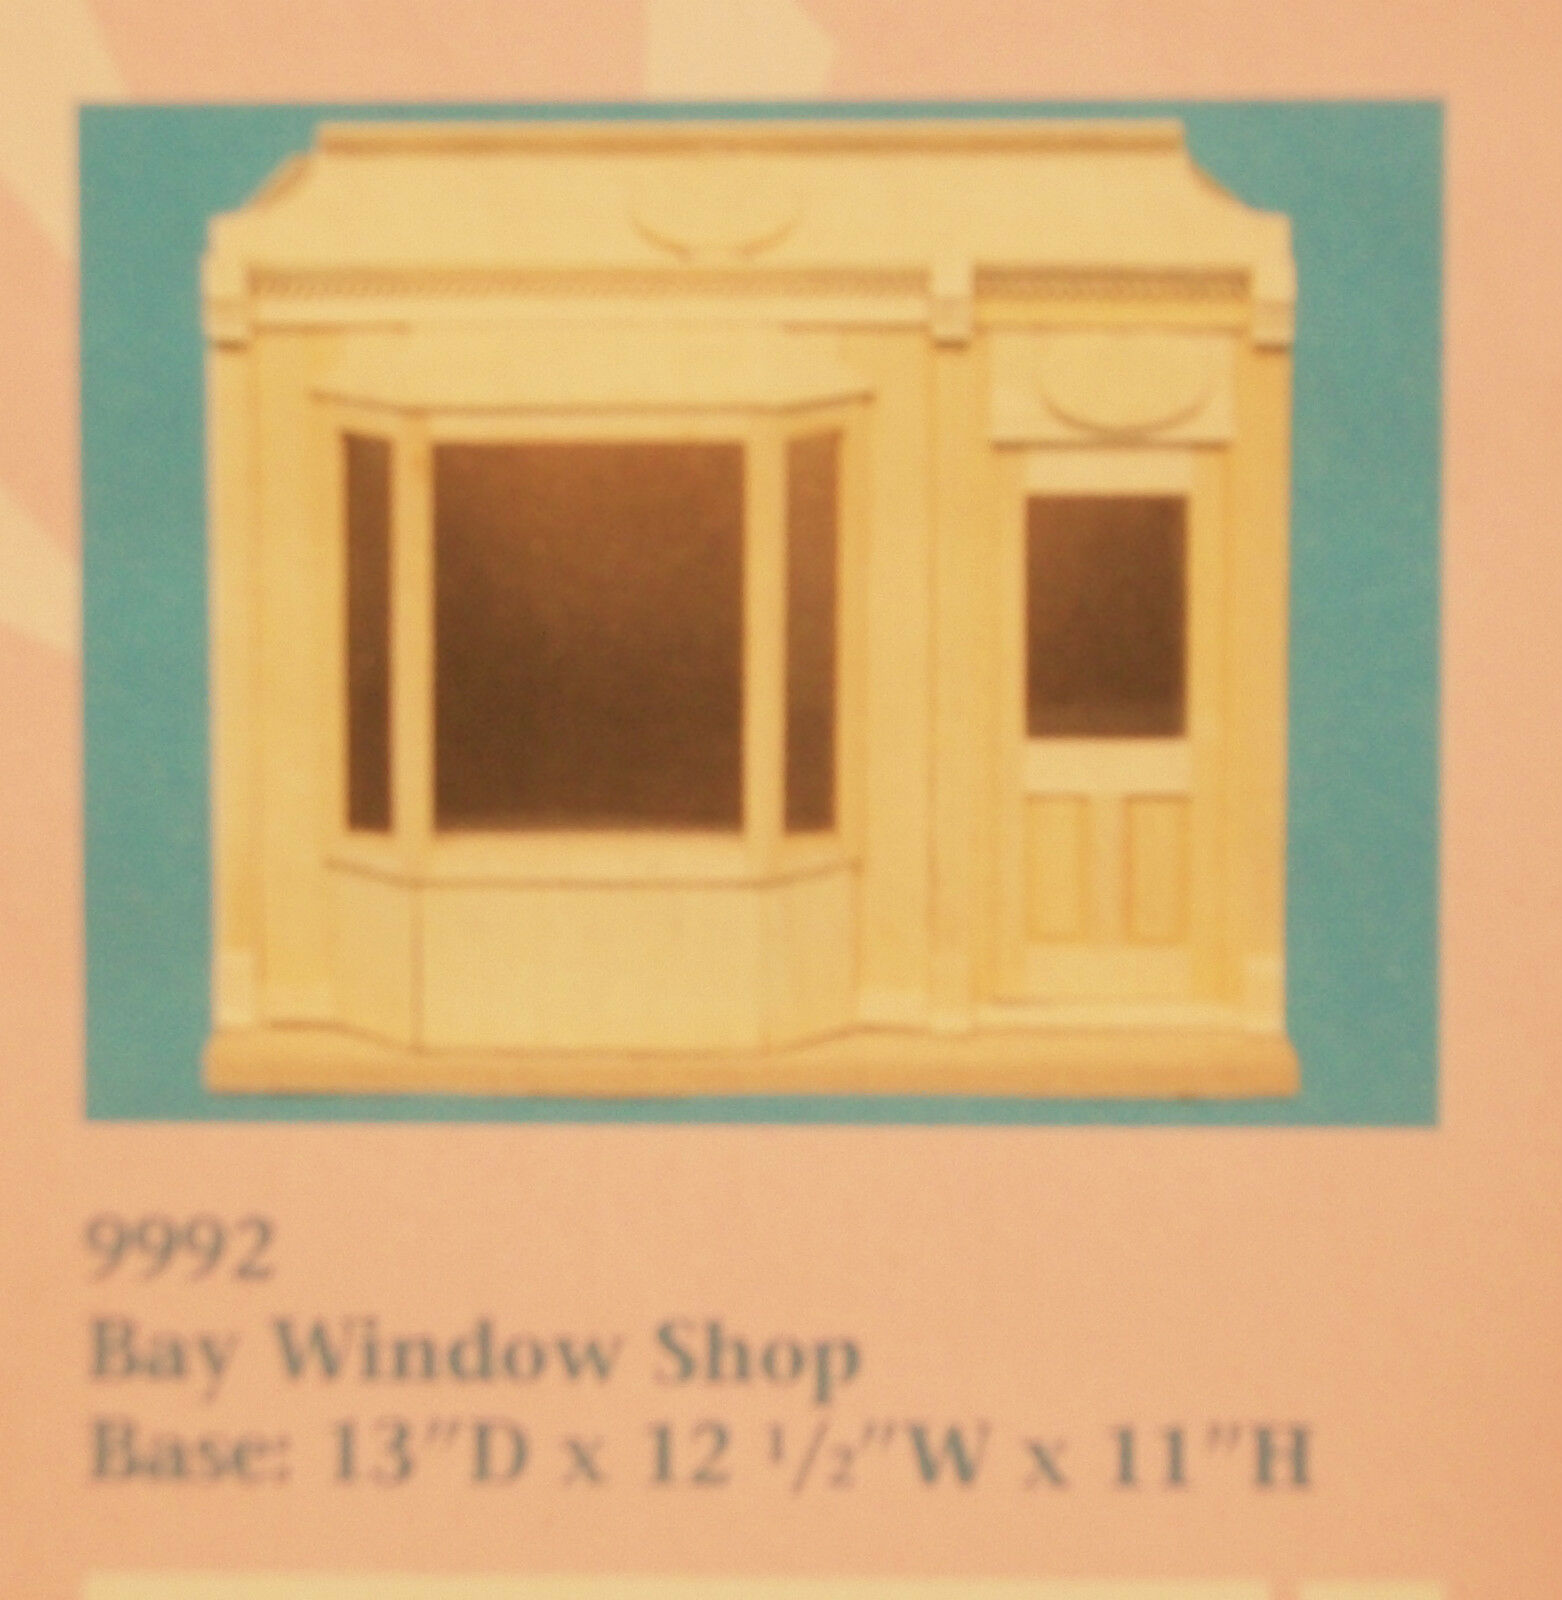 BAY WINDOW SHOP KIT -- by Houseworks 9992 unfinished wood 1/12 scale dollhouse